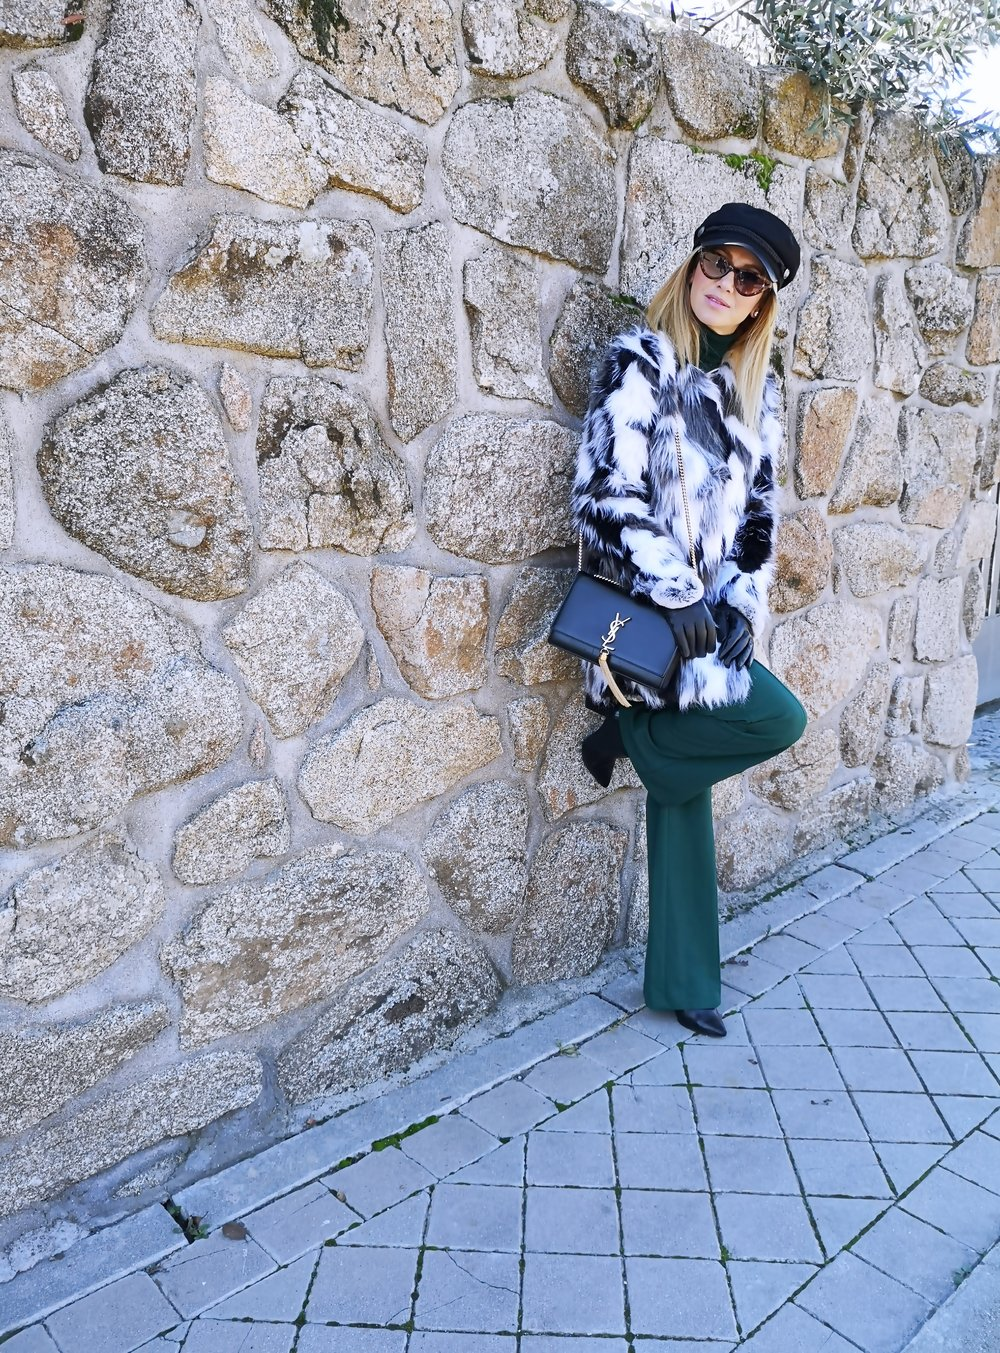 OUTFIT DETAILS: Fur Coat:  SHEIN ; Pants:  SHEIN ; Bag: YVES SAINT LAURENT; Cap: H&M; Sweater: ZARA (old); Belt: GUCCI; Ankle Boots: PEDRO MIRALLES,